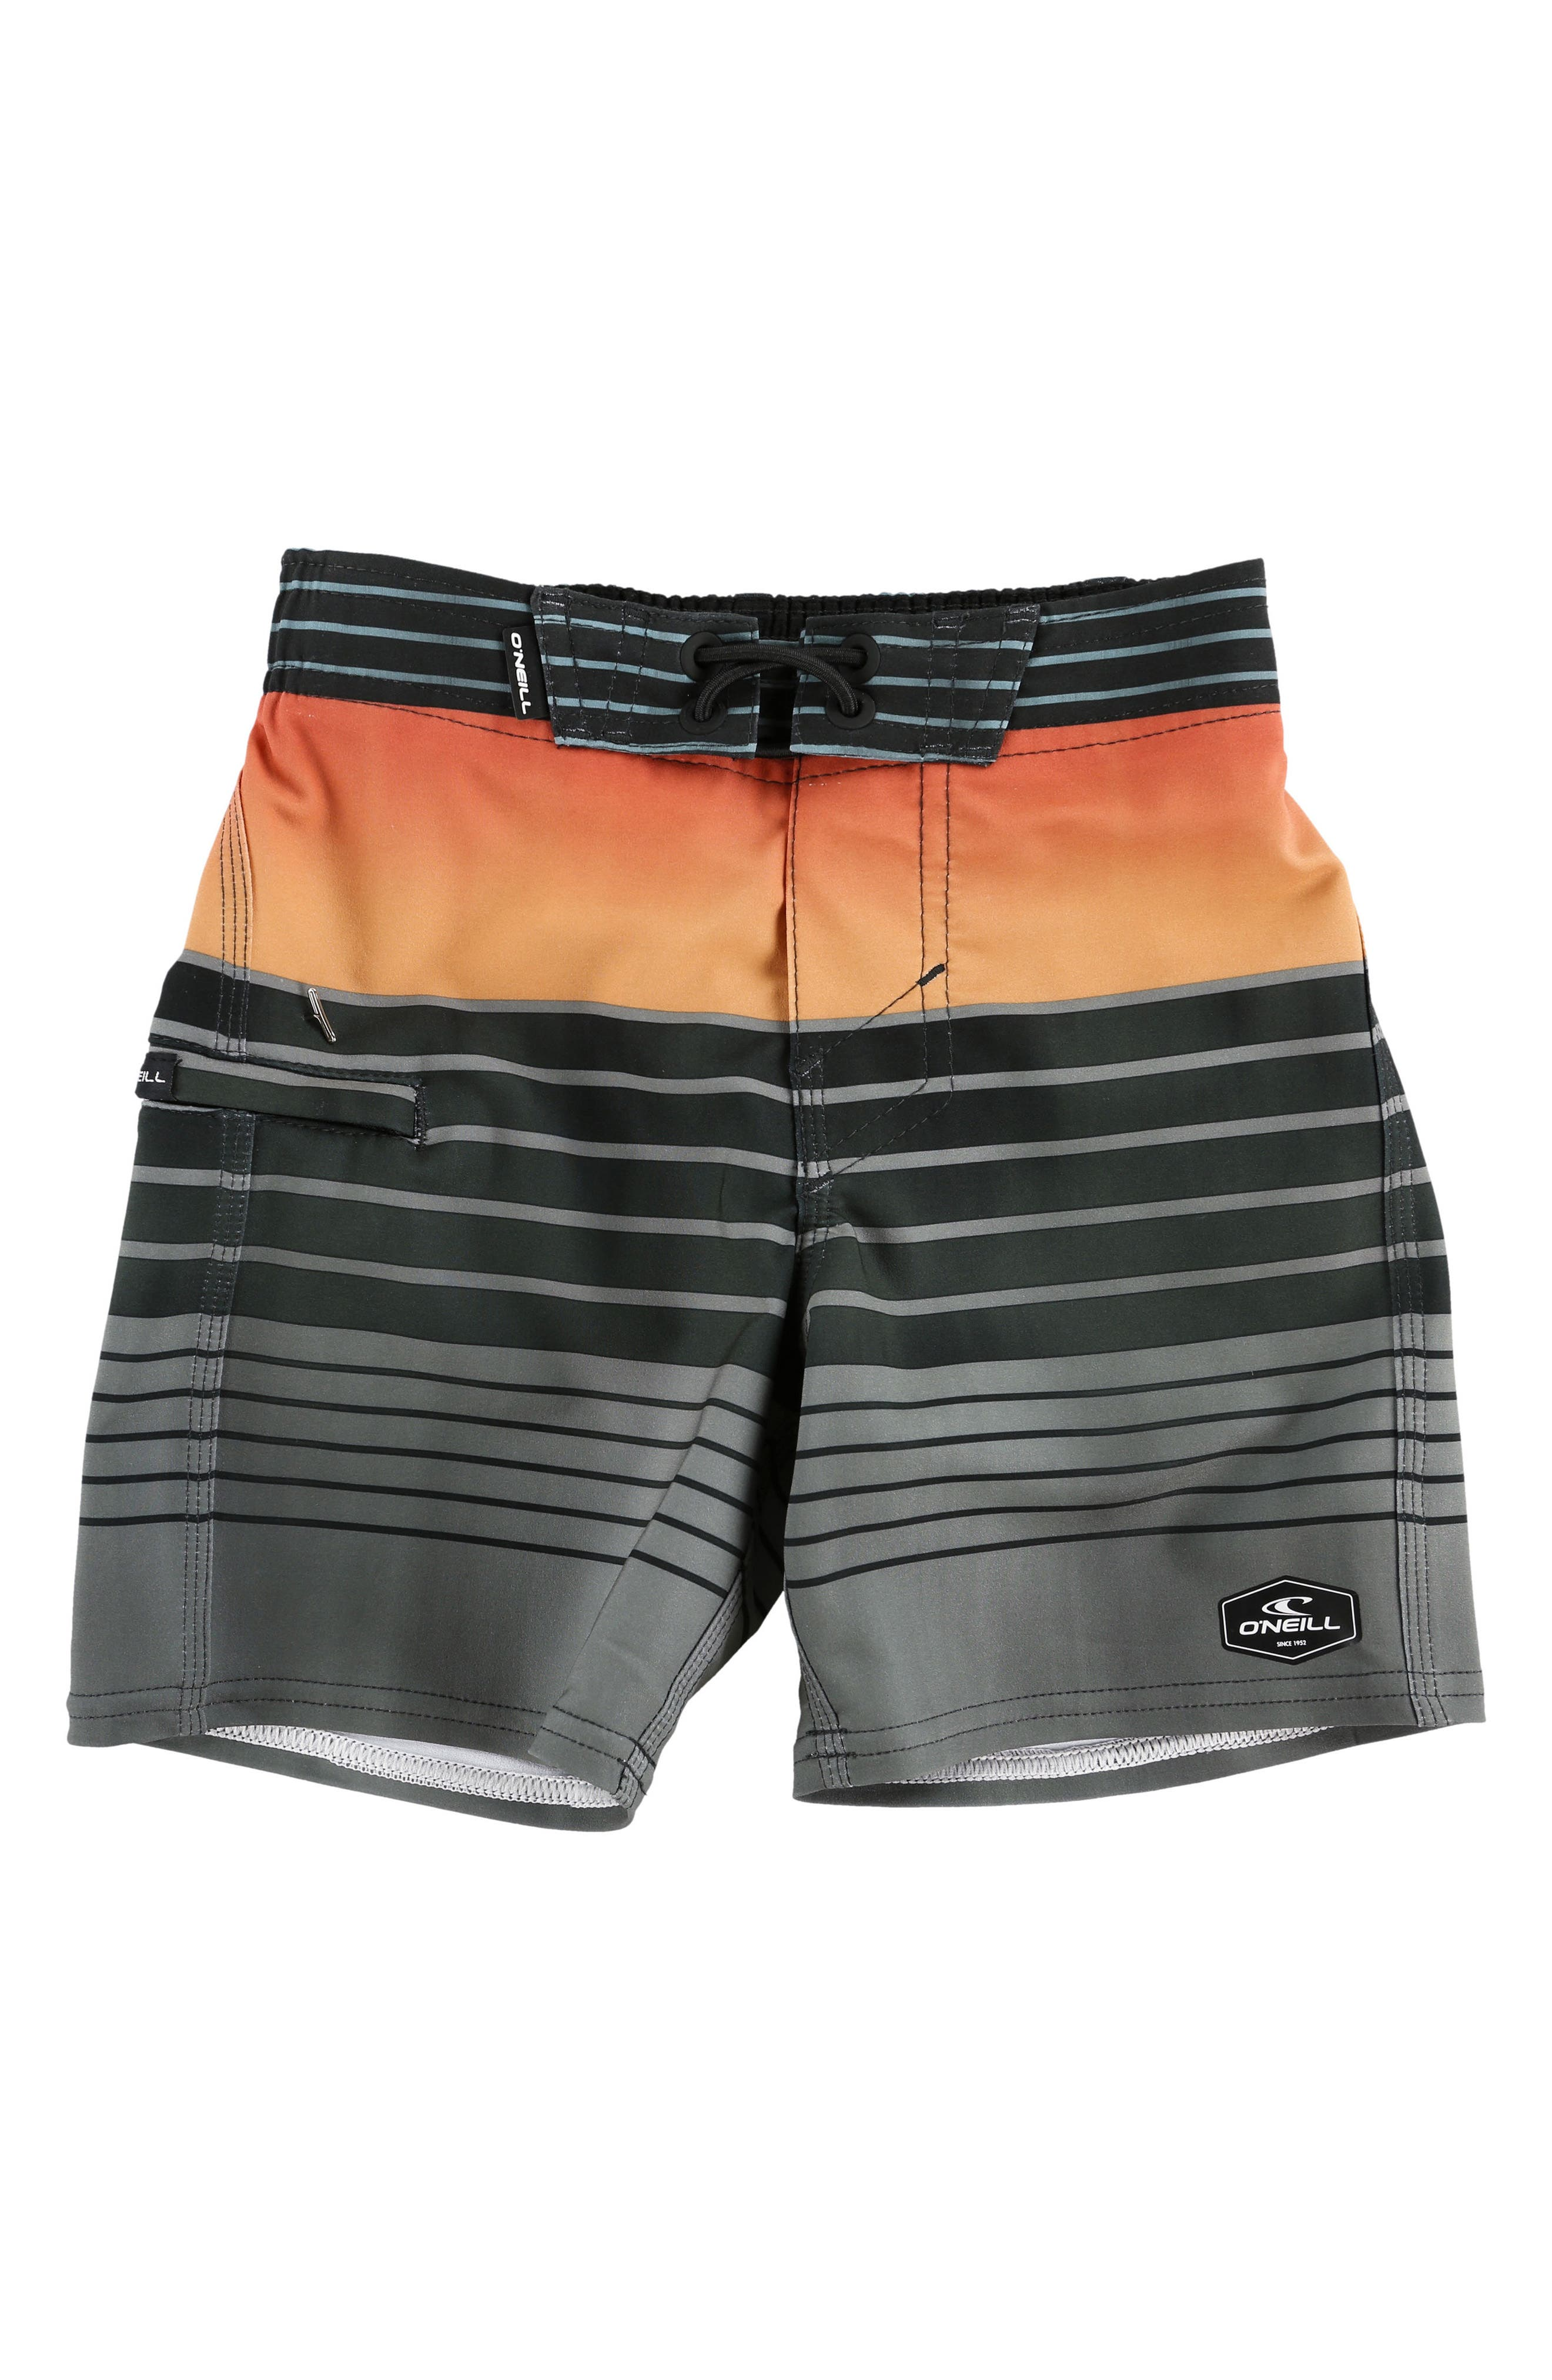 Hyperfreak Heist Board Shorts,                             Main thumbnail 2, color,